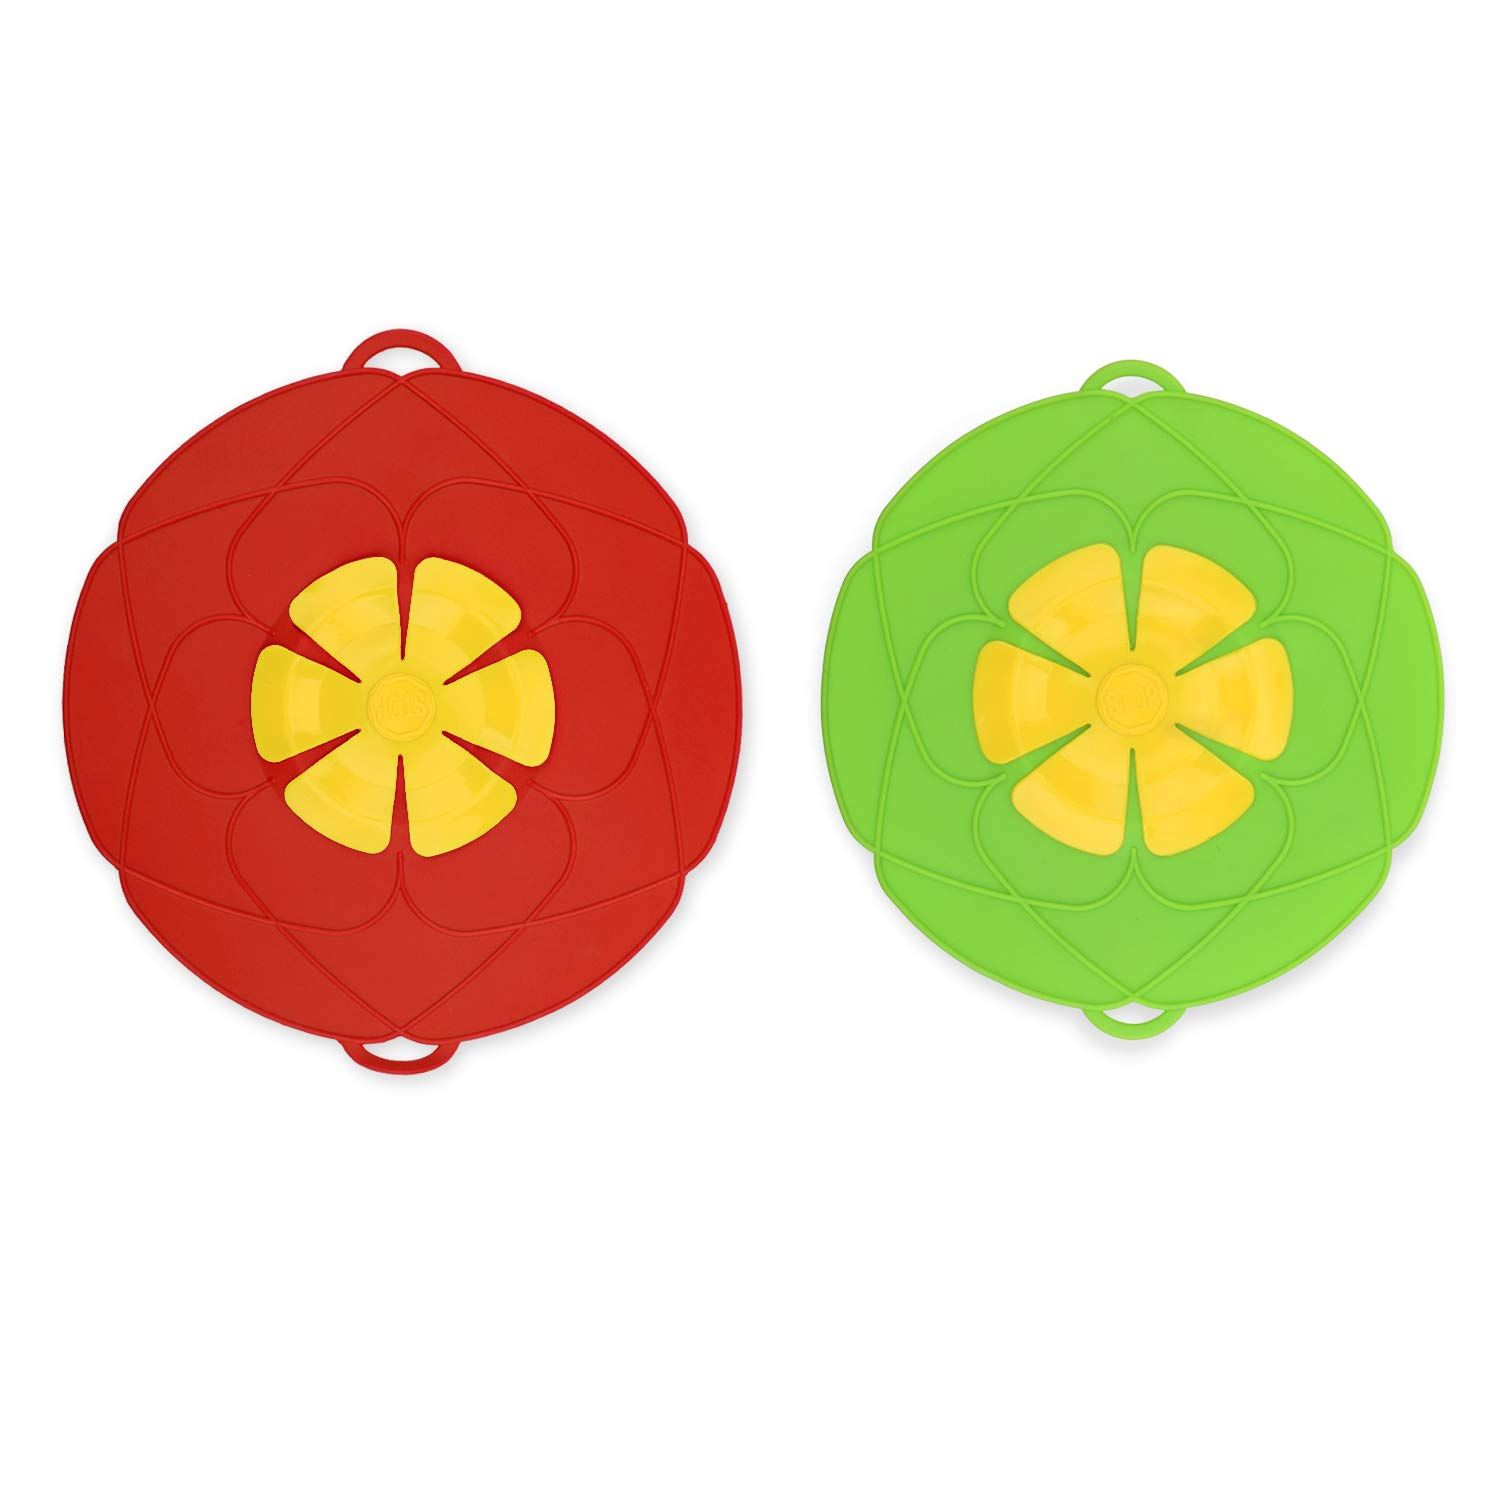 Boil Over Spill Stopper - IEBIYO Silicone Spill Stopper Lid - BPA Free and Food Grade - for Microwave, Stovetop, Oven, Refrigerator, Freezer, Pot, Pan (Red and Green)